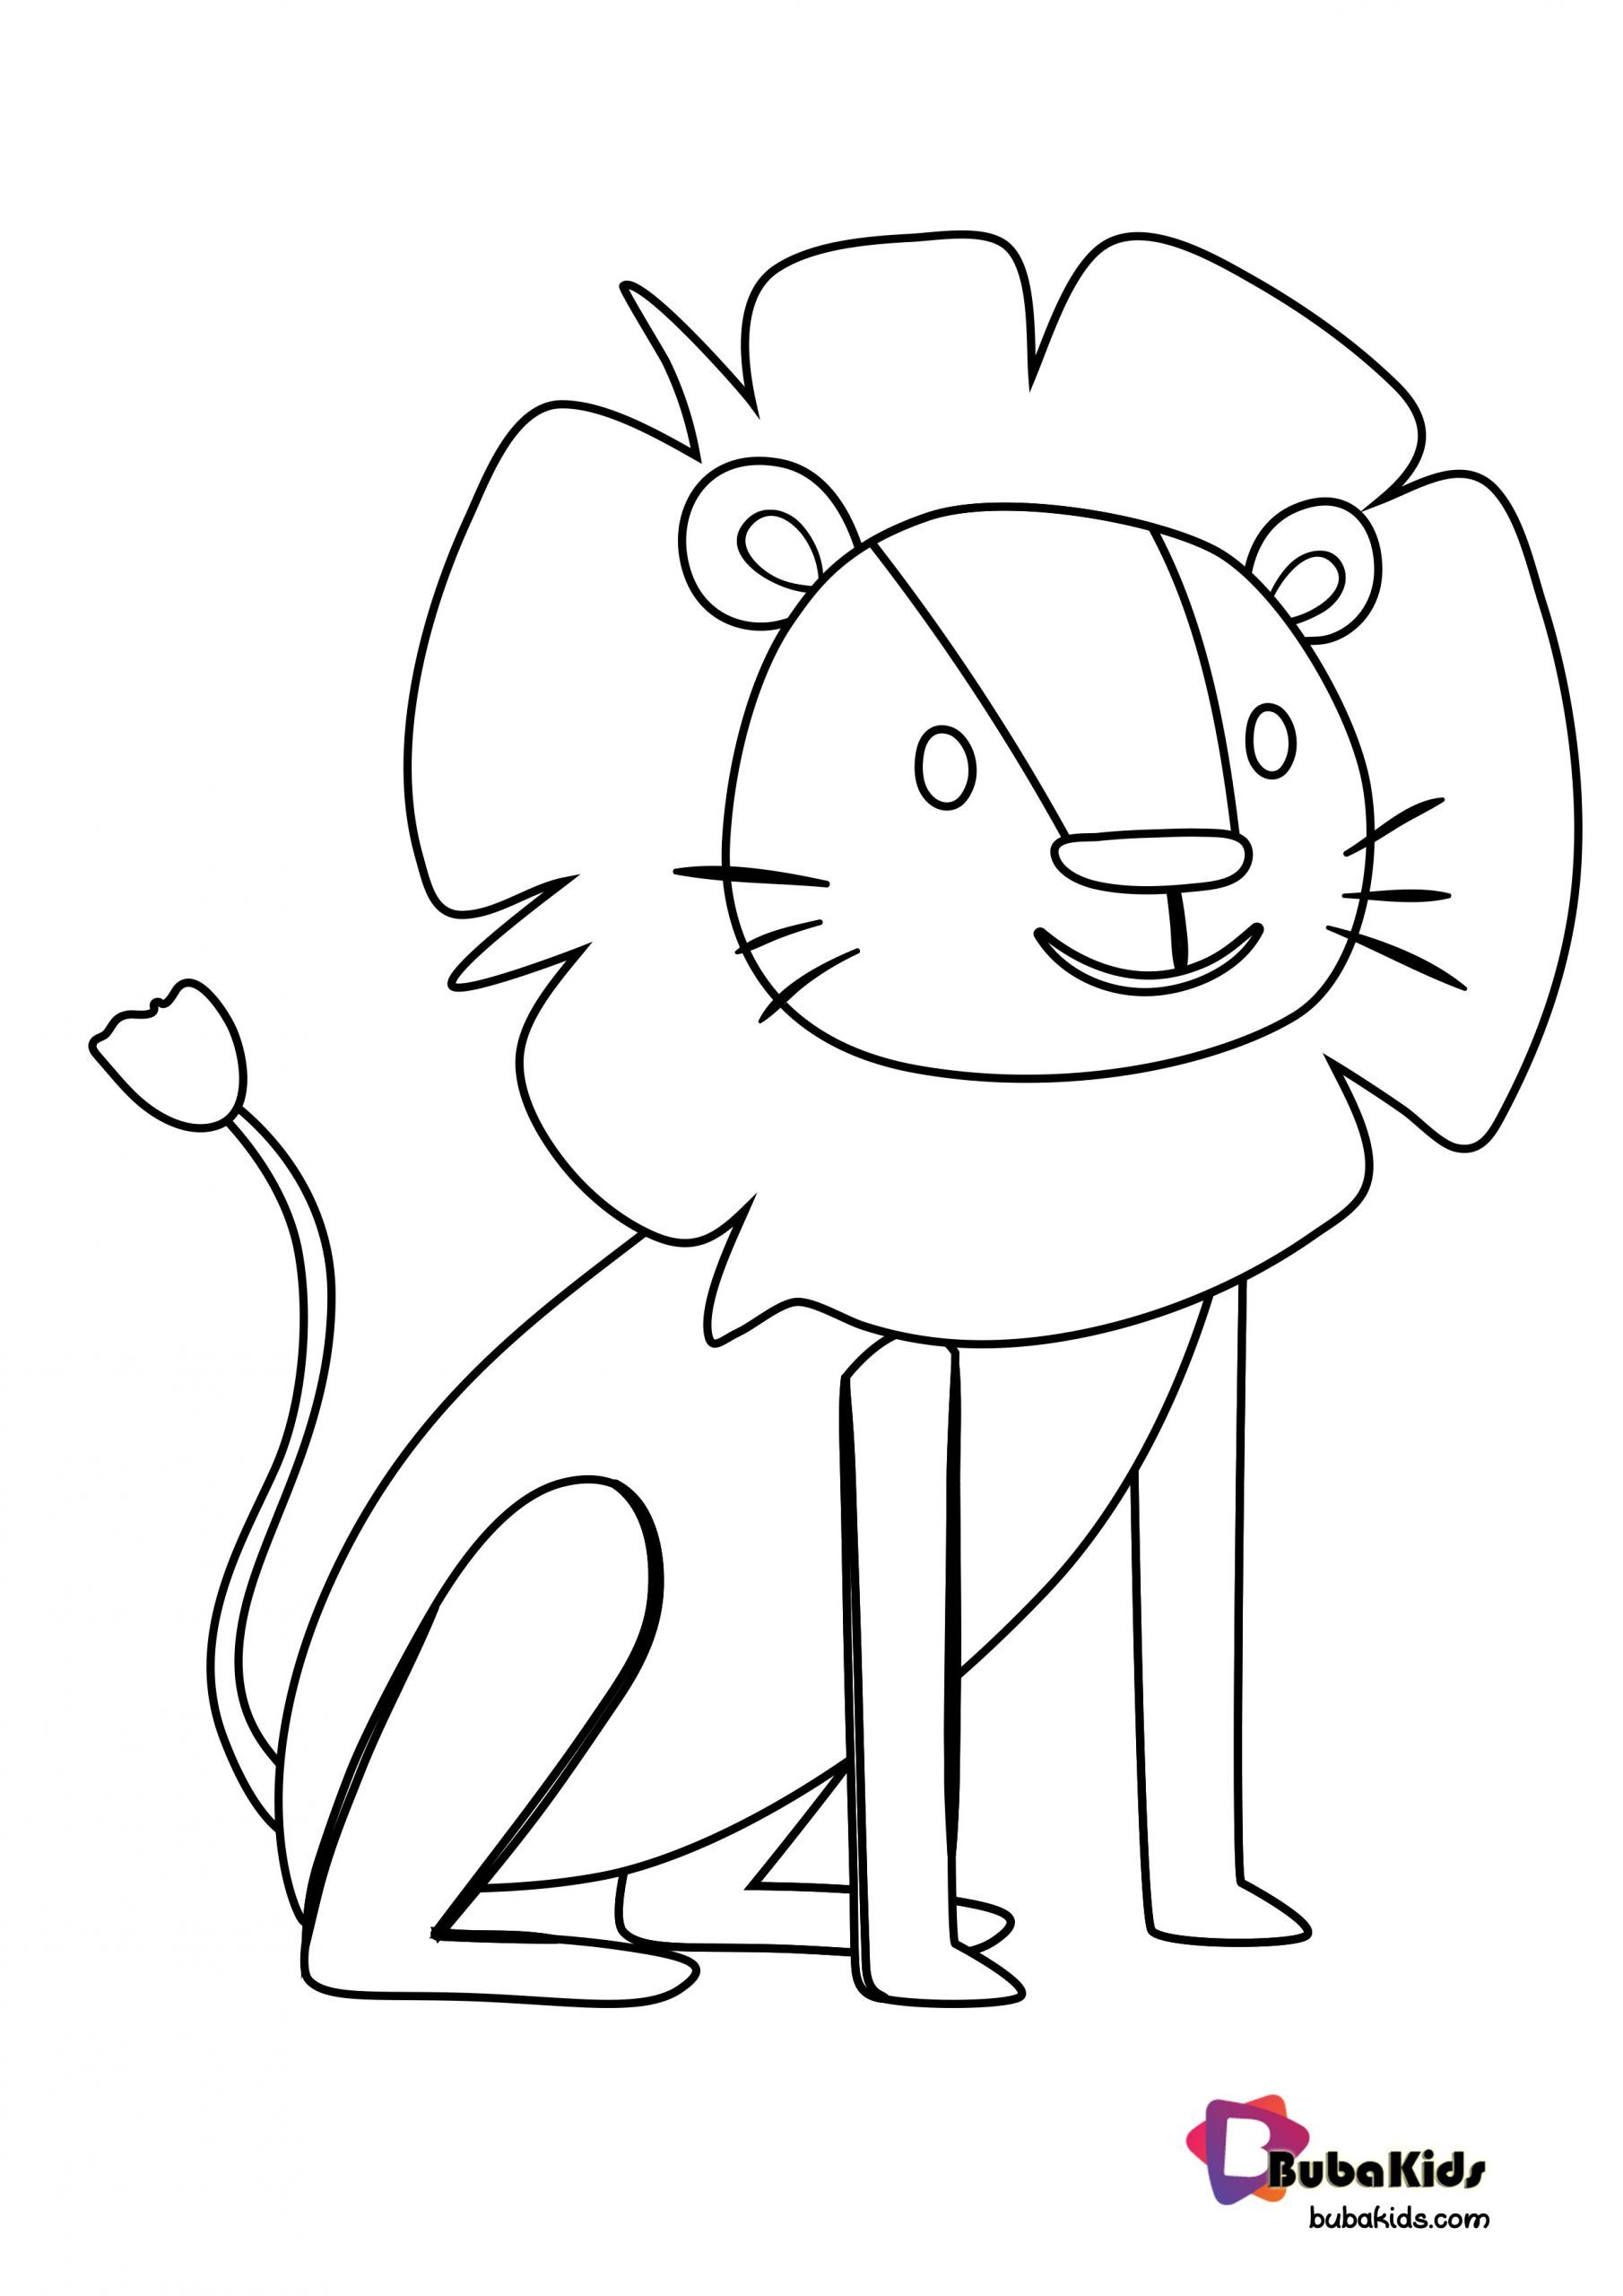 Cute Lion For Preschool Kids Coloring Page In 2020 Animal